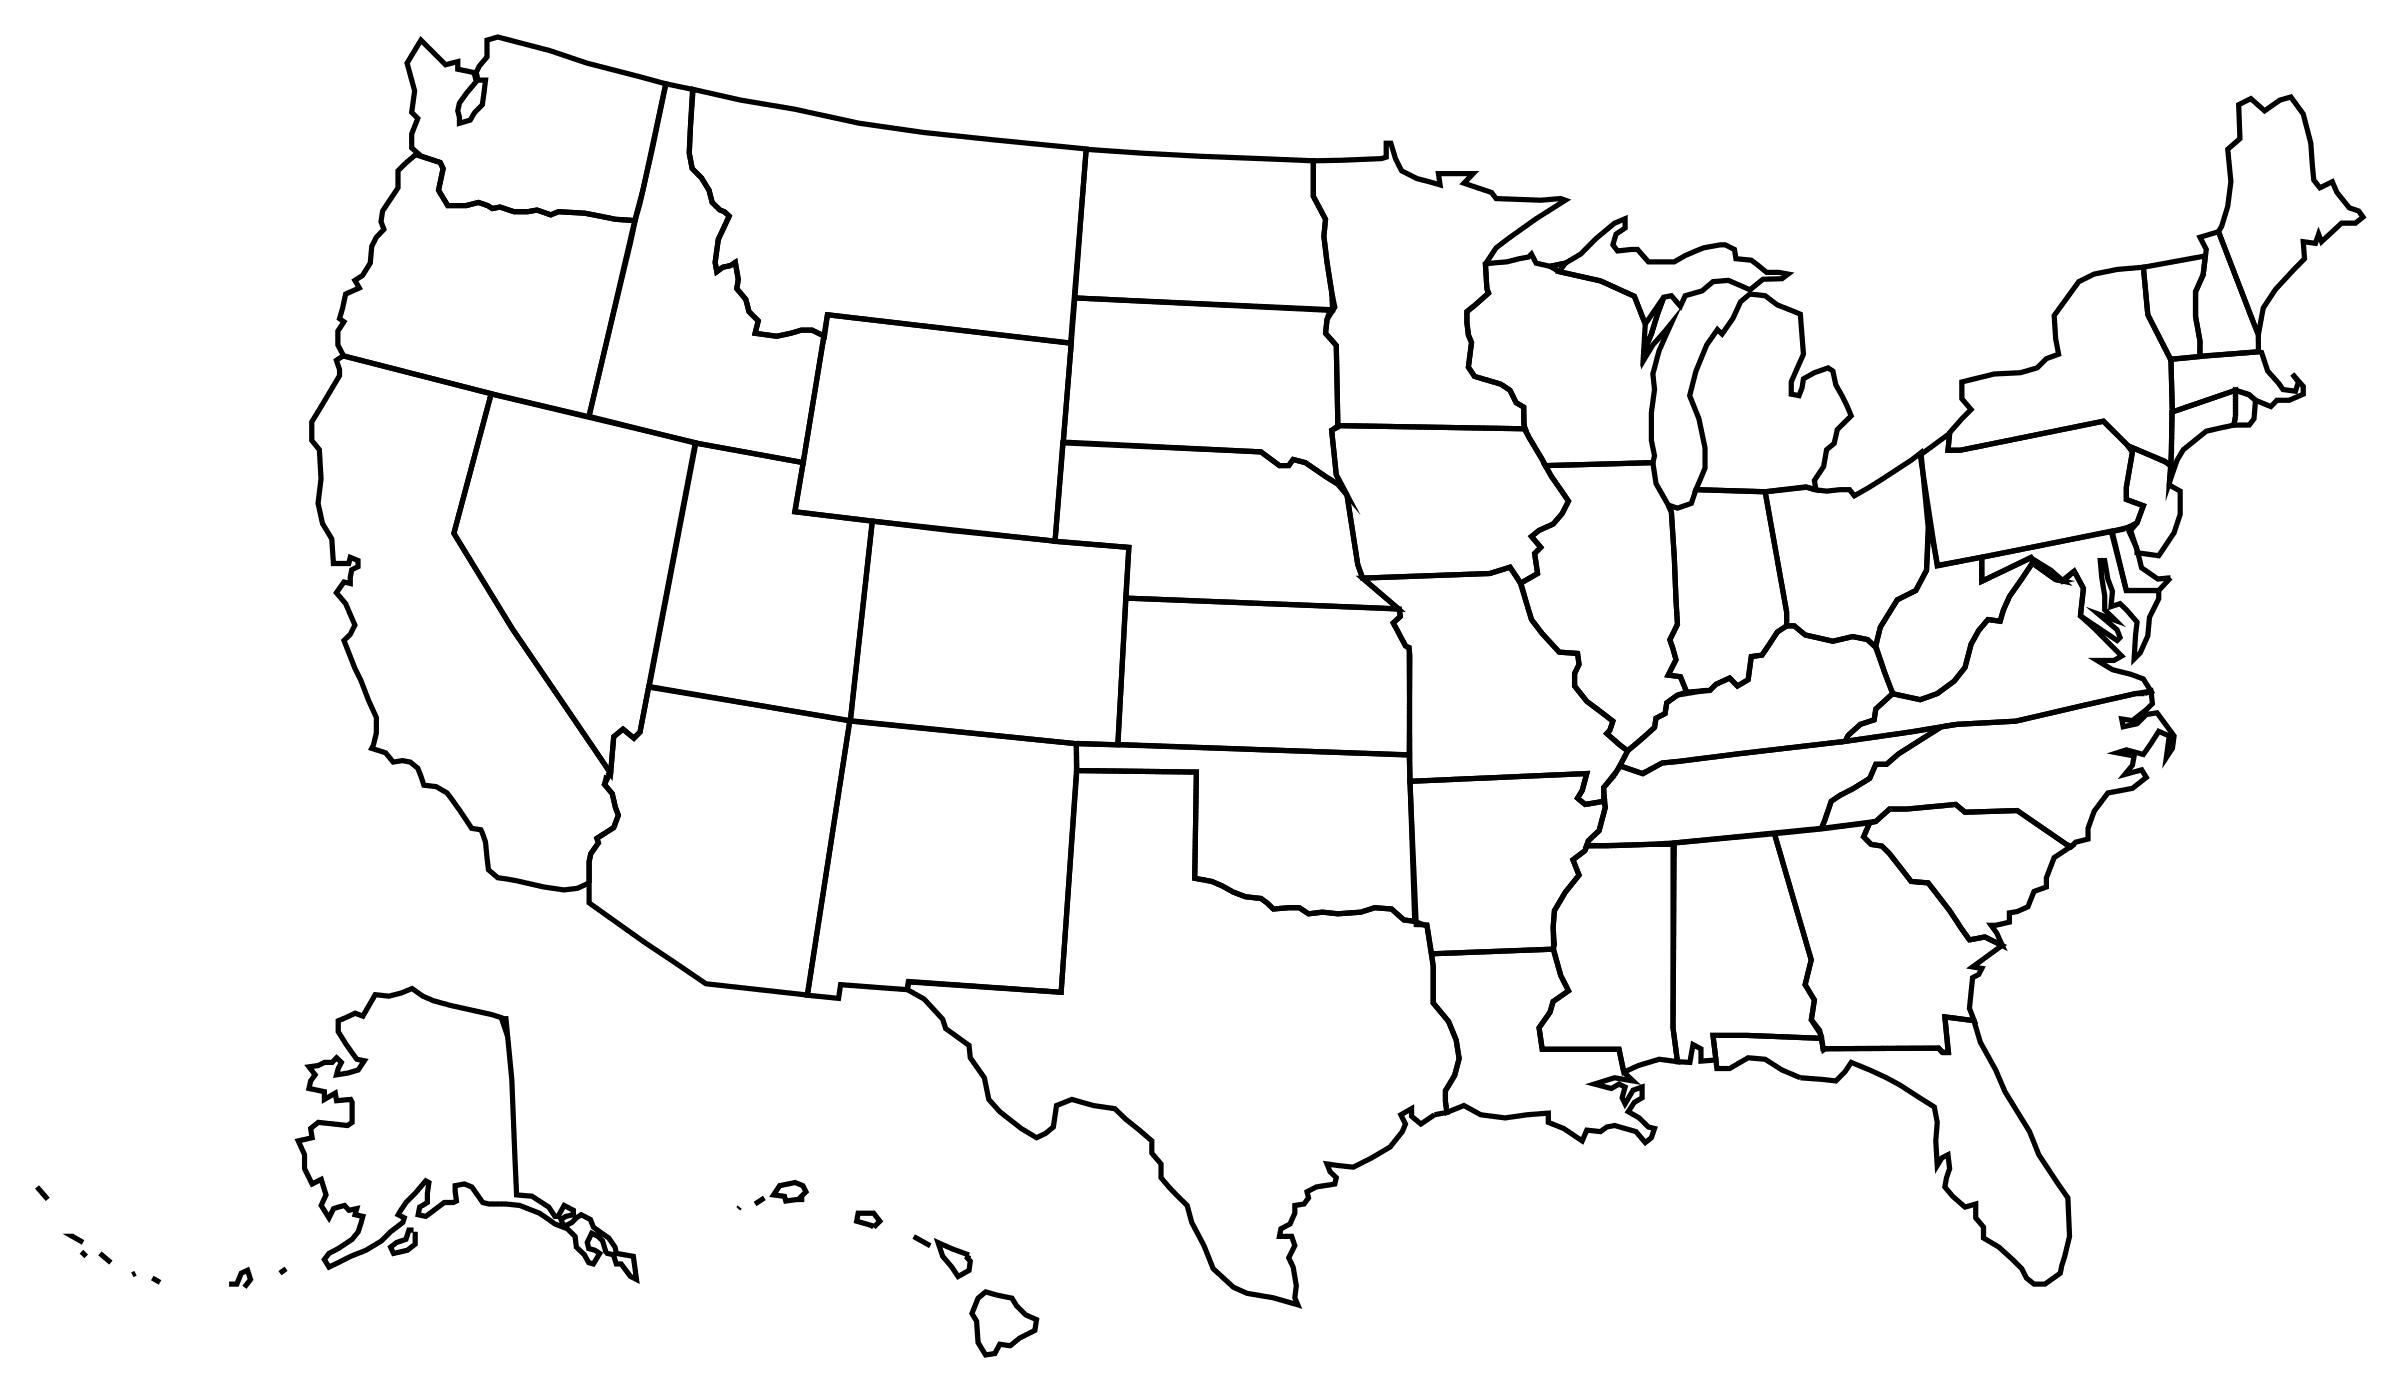 Blank Us Map Png Download Us Map Outline Png | PNG & GIF BASE